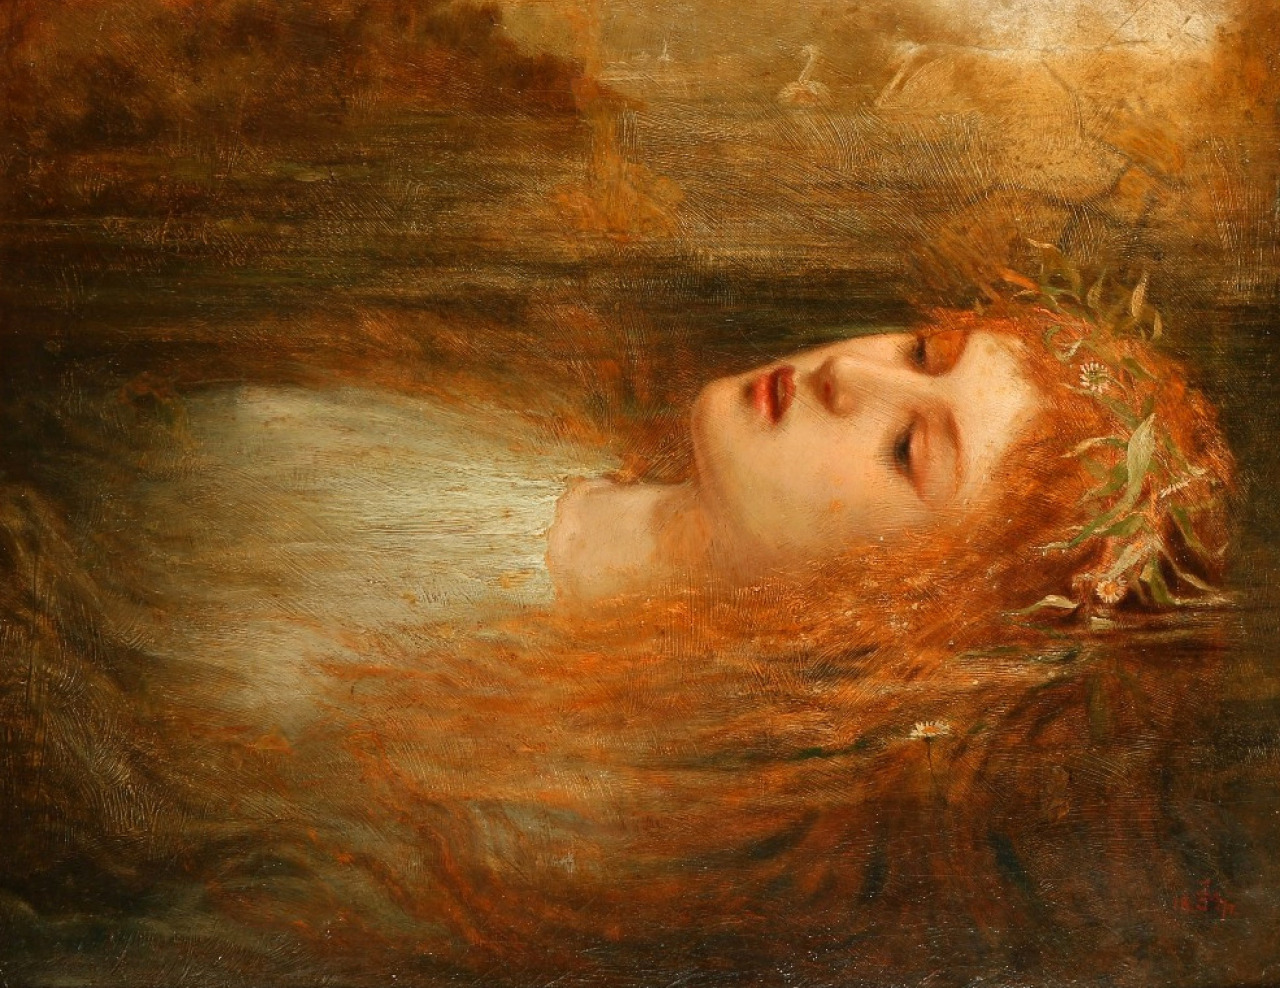 essay on a shakespeare related piece of work ophelia by